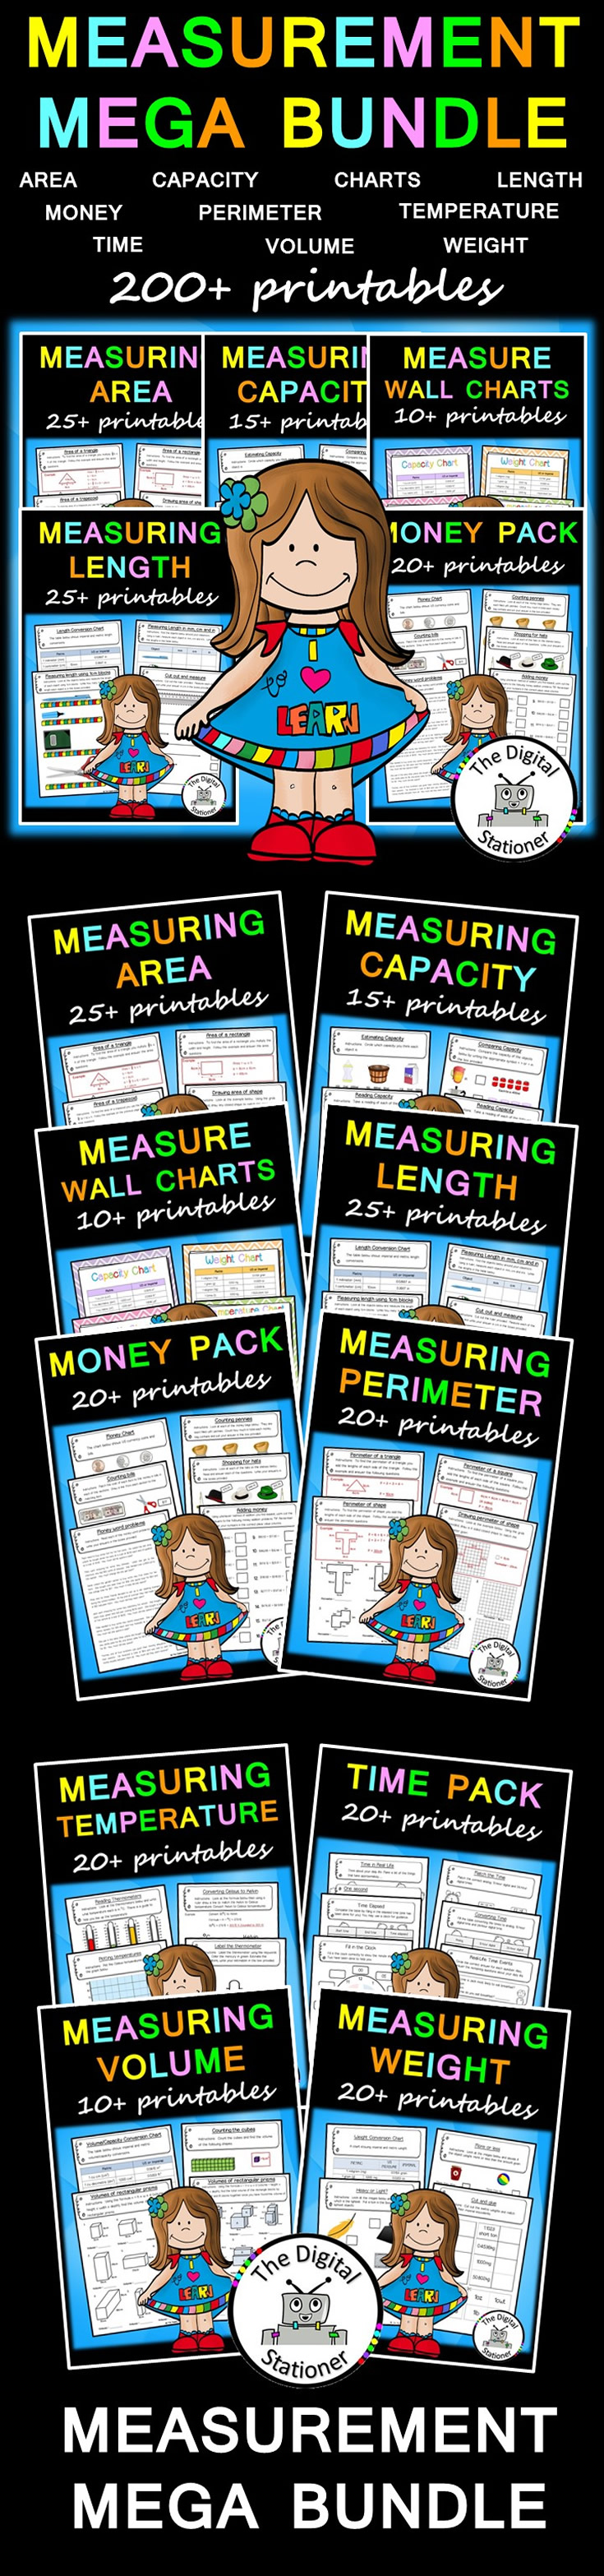 Measurement MEGA Bundle – 200+ printables | My TPT Maths Resources ...